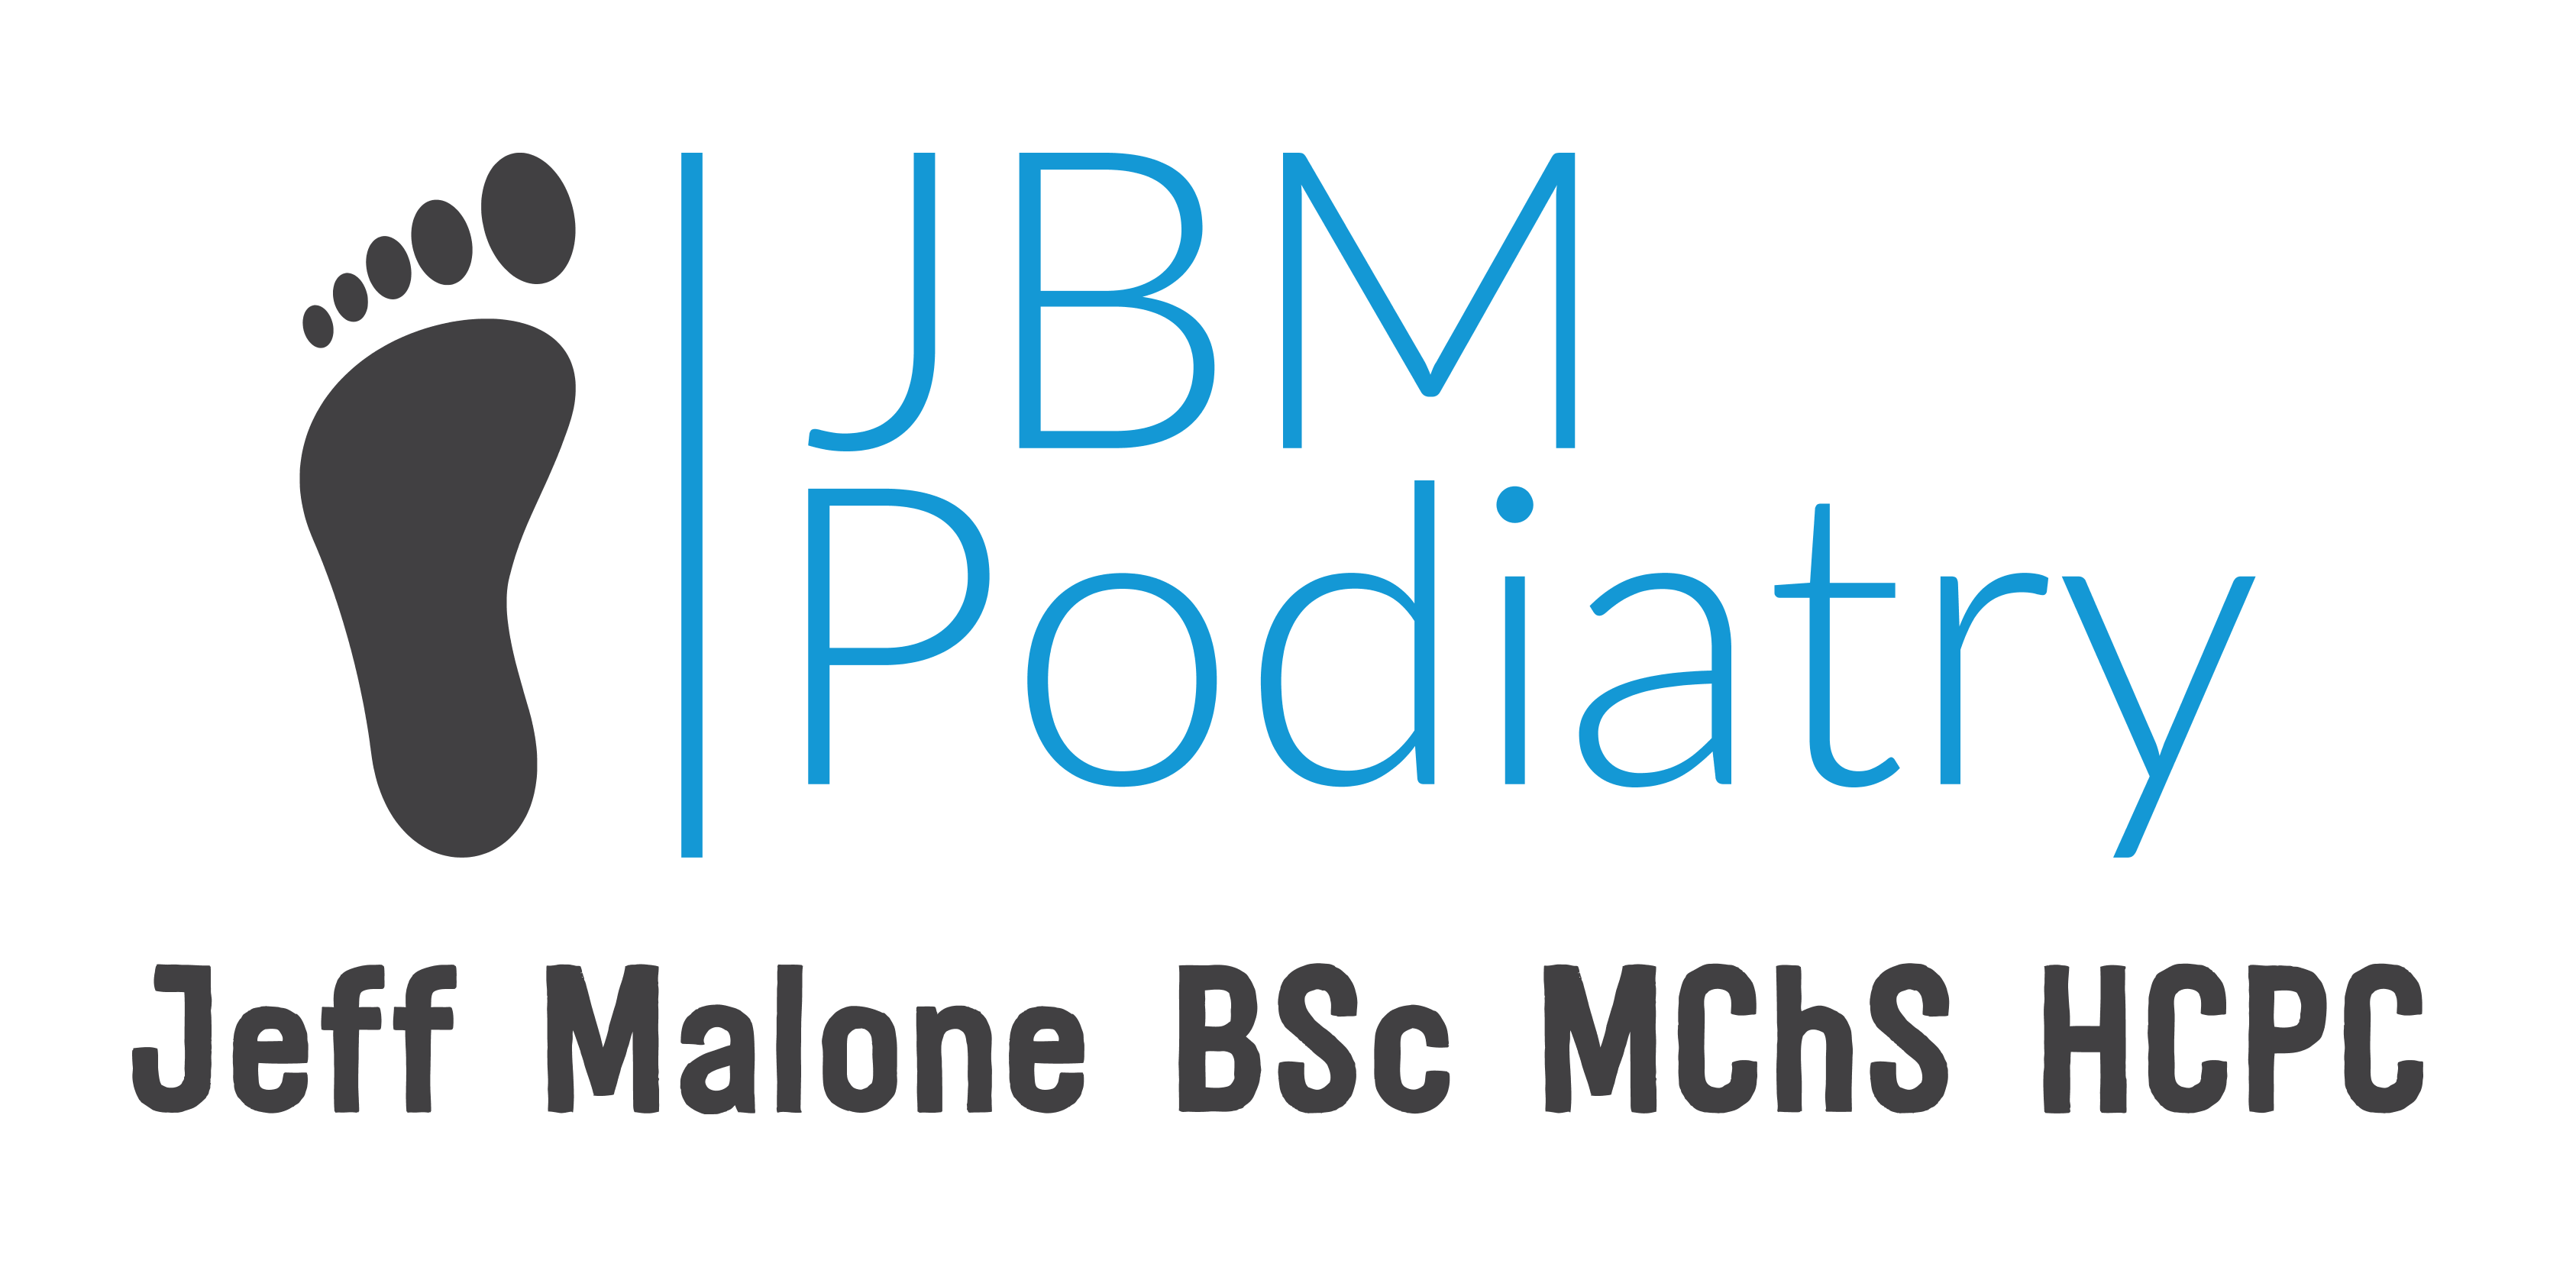 JBM Podiatry Nantwich